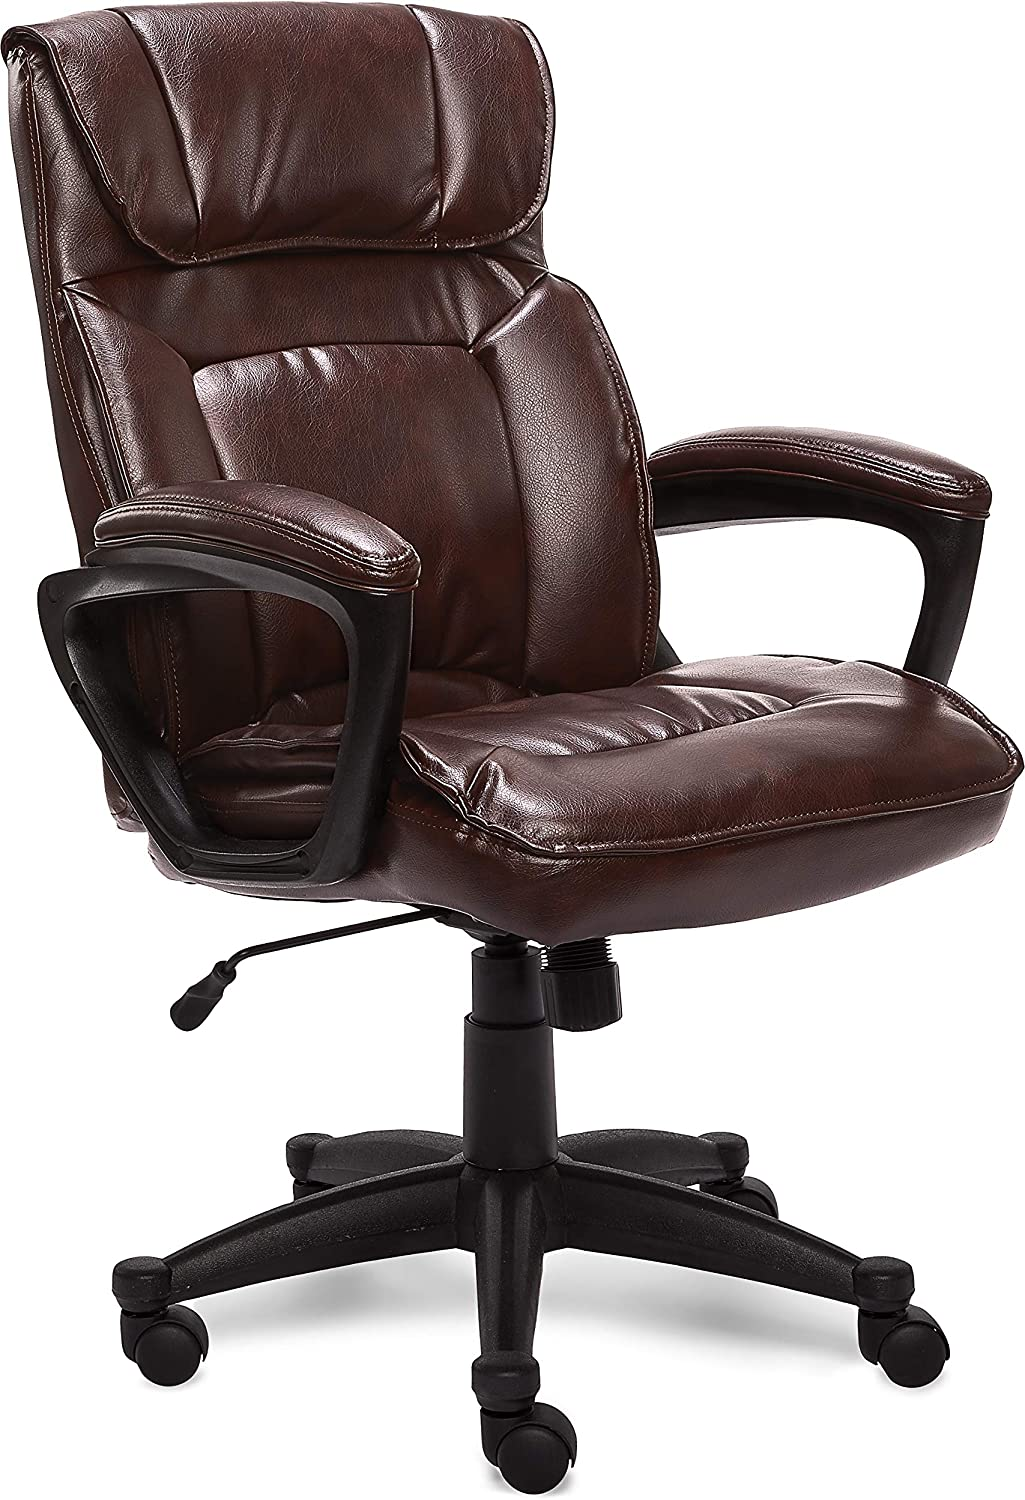 Serta Executive Desk Chair with Bonded Leather